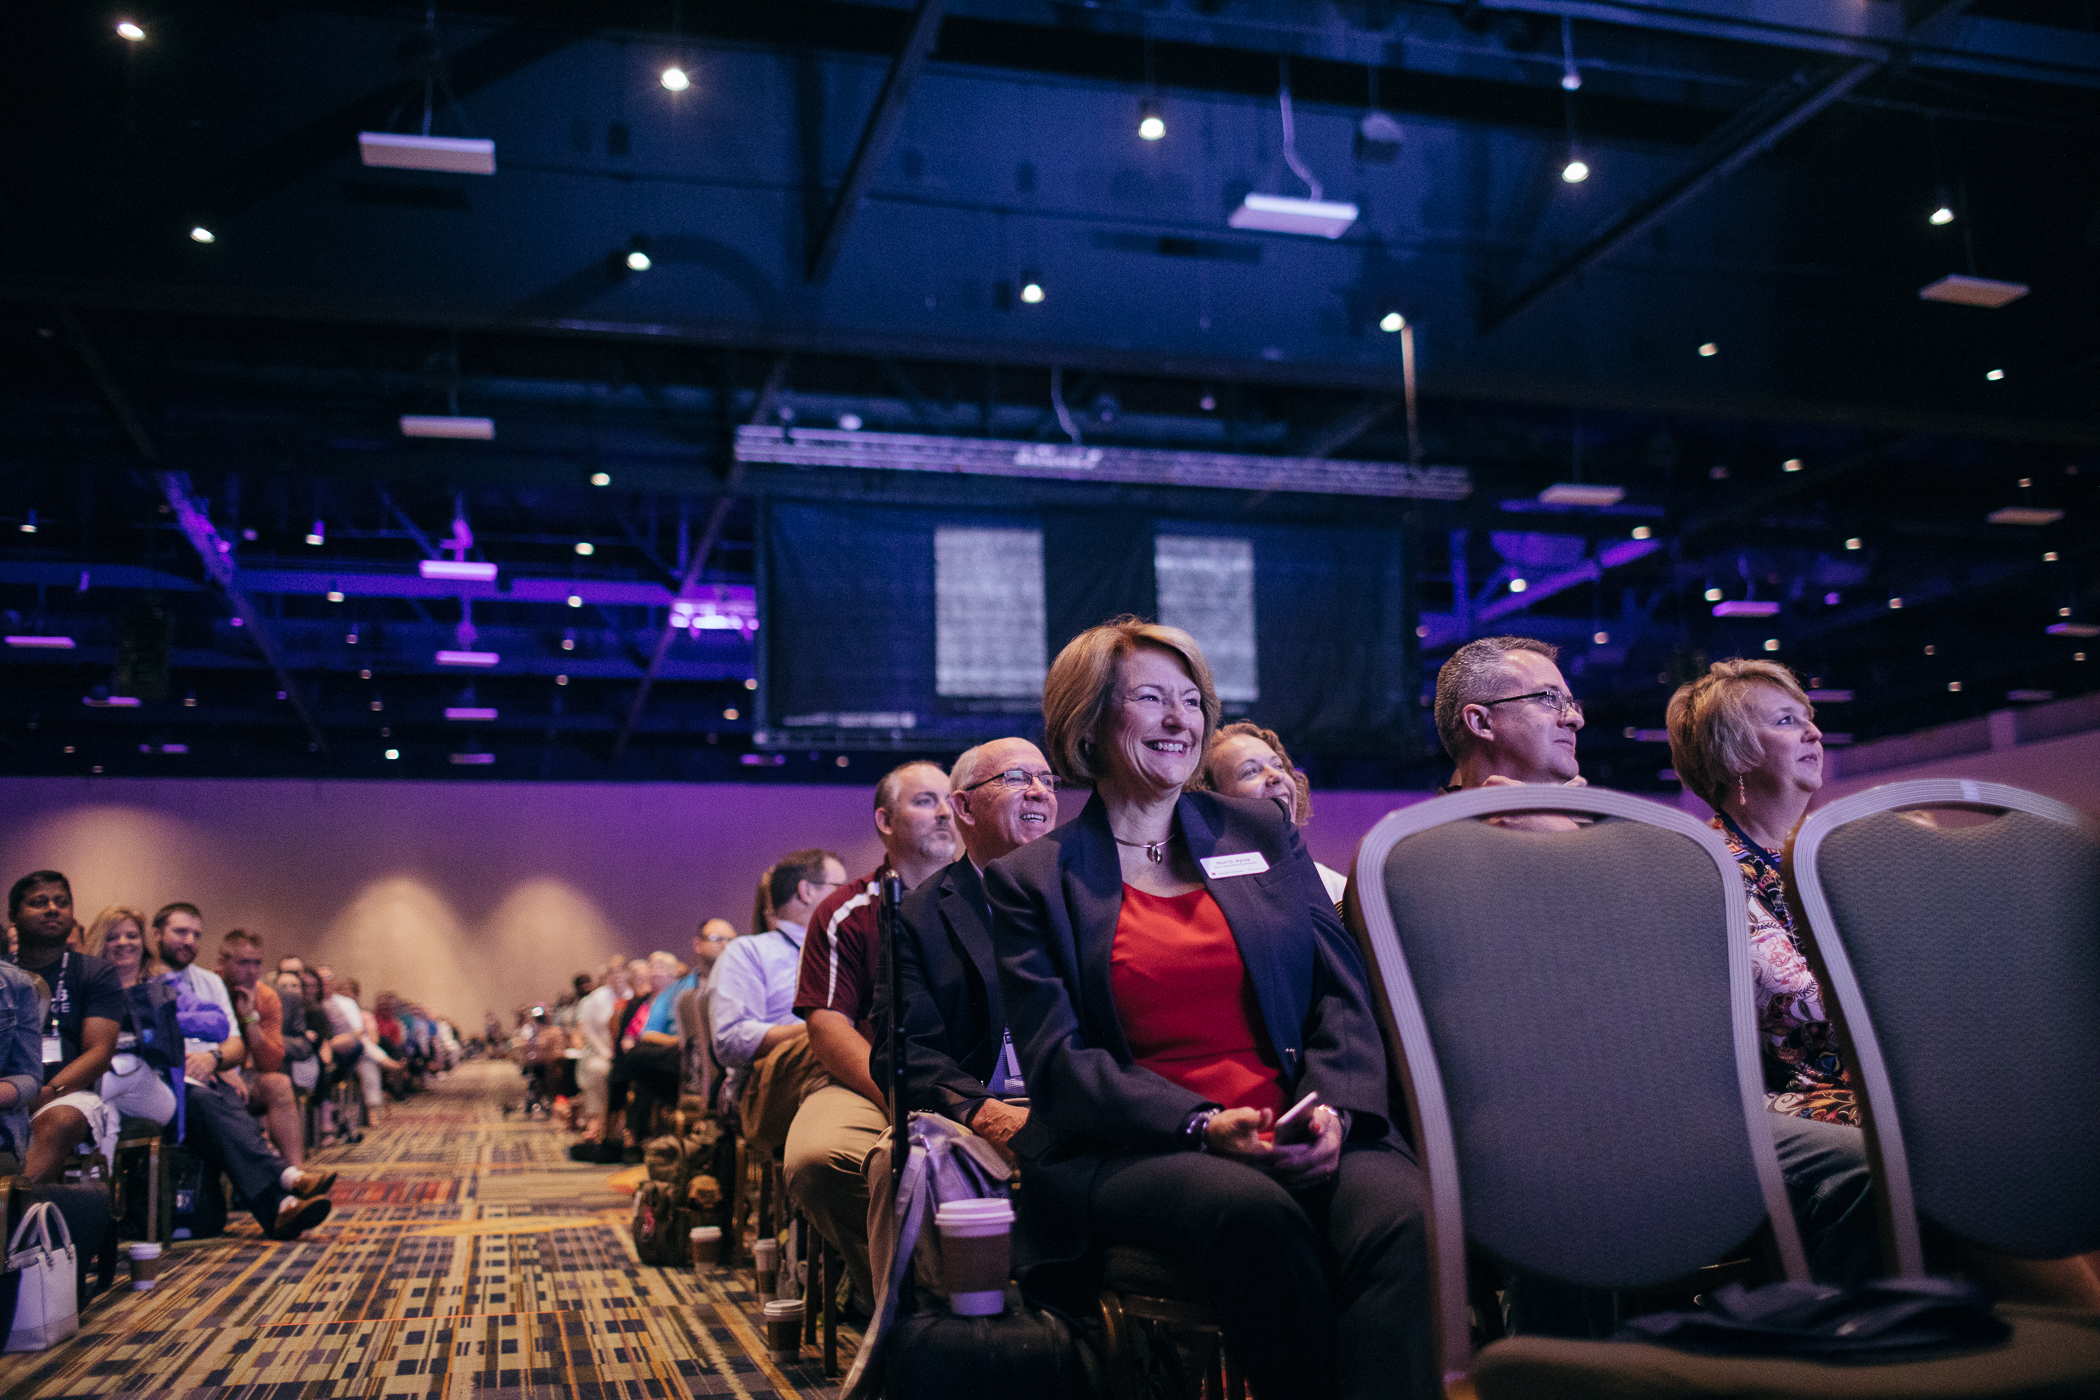 live event commercial photography brand storytelling for education florida conference photographer ©2018abigailbobophotography-102.jpg